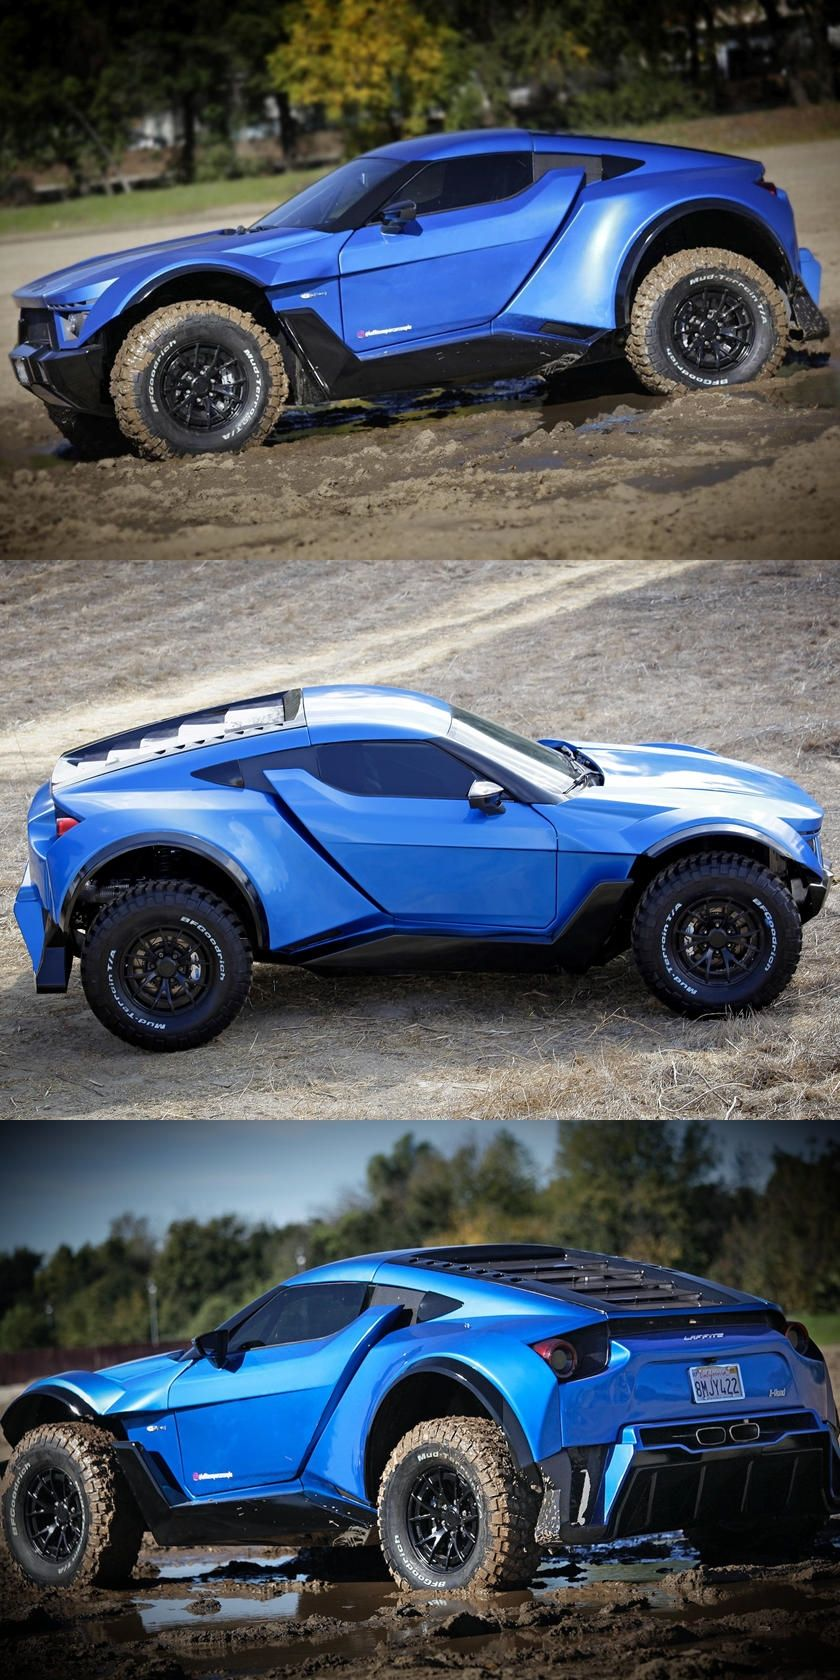 Insane Off Roading Supercars For Those Who Don T Want To Take In The Scenery When Going Off The Beaten Path In 2020 Super Cars Offroad Street Cars